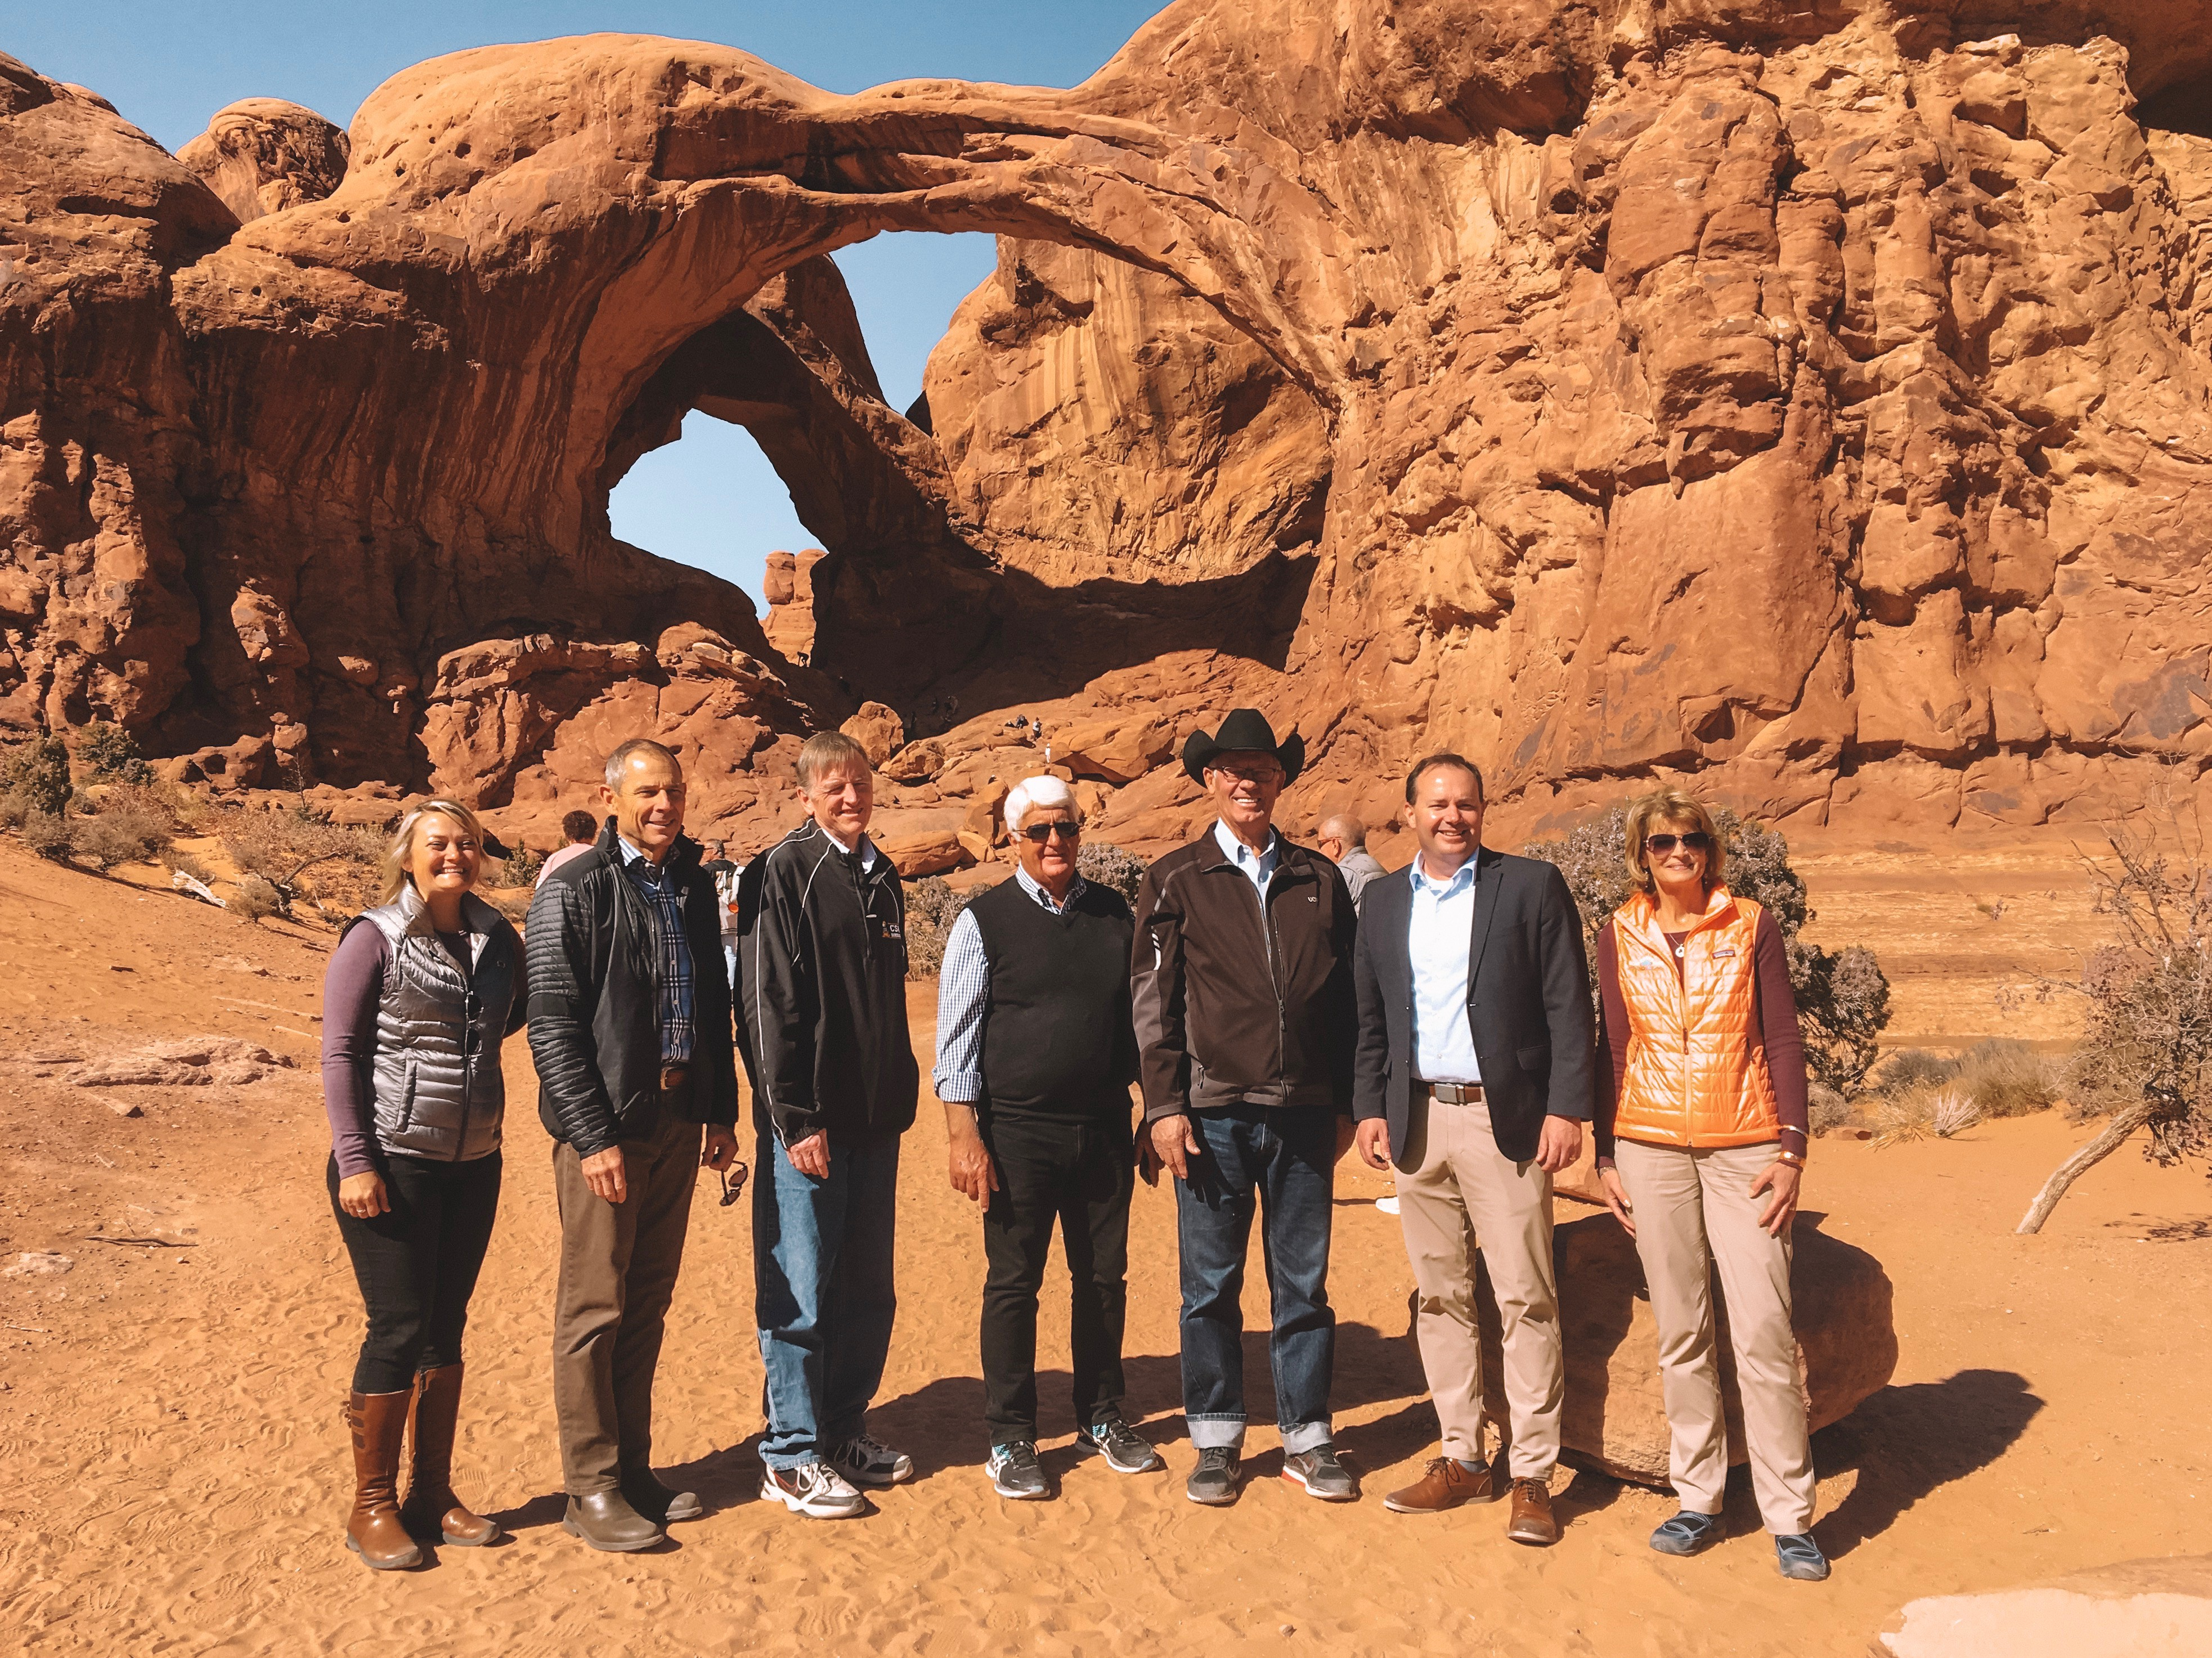 Visiting Double Arch with my colleagues